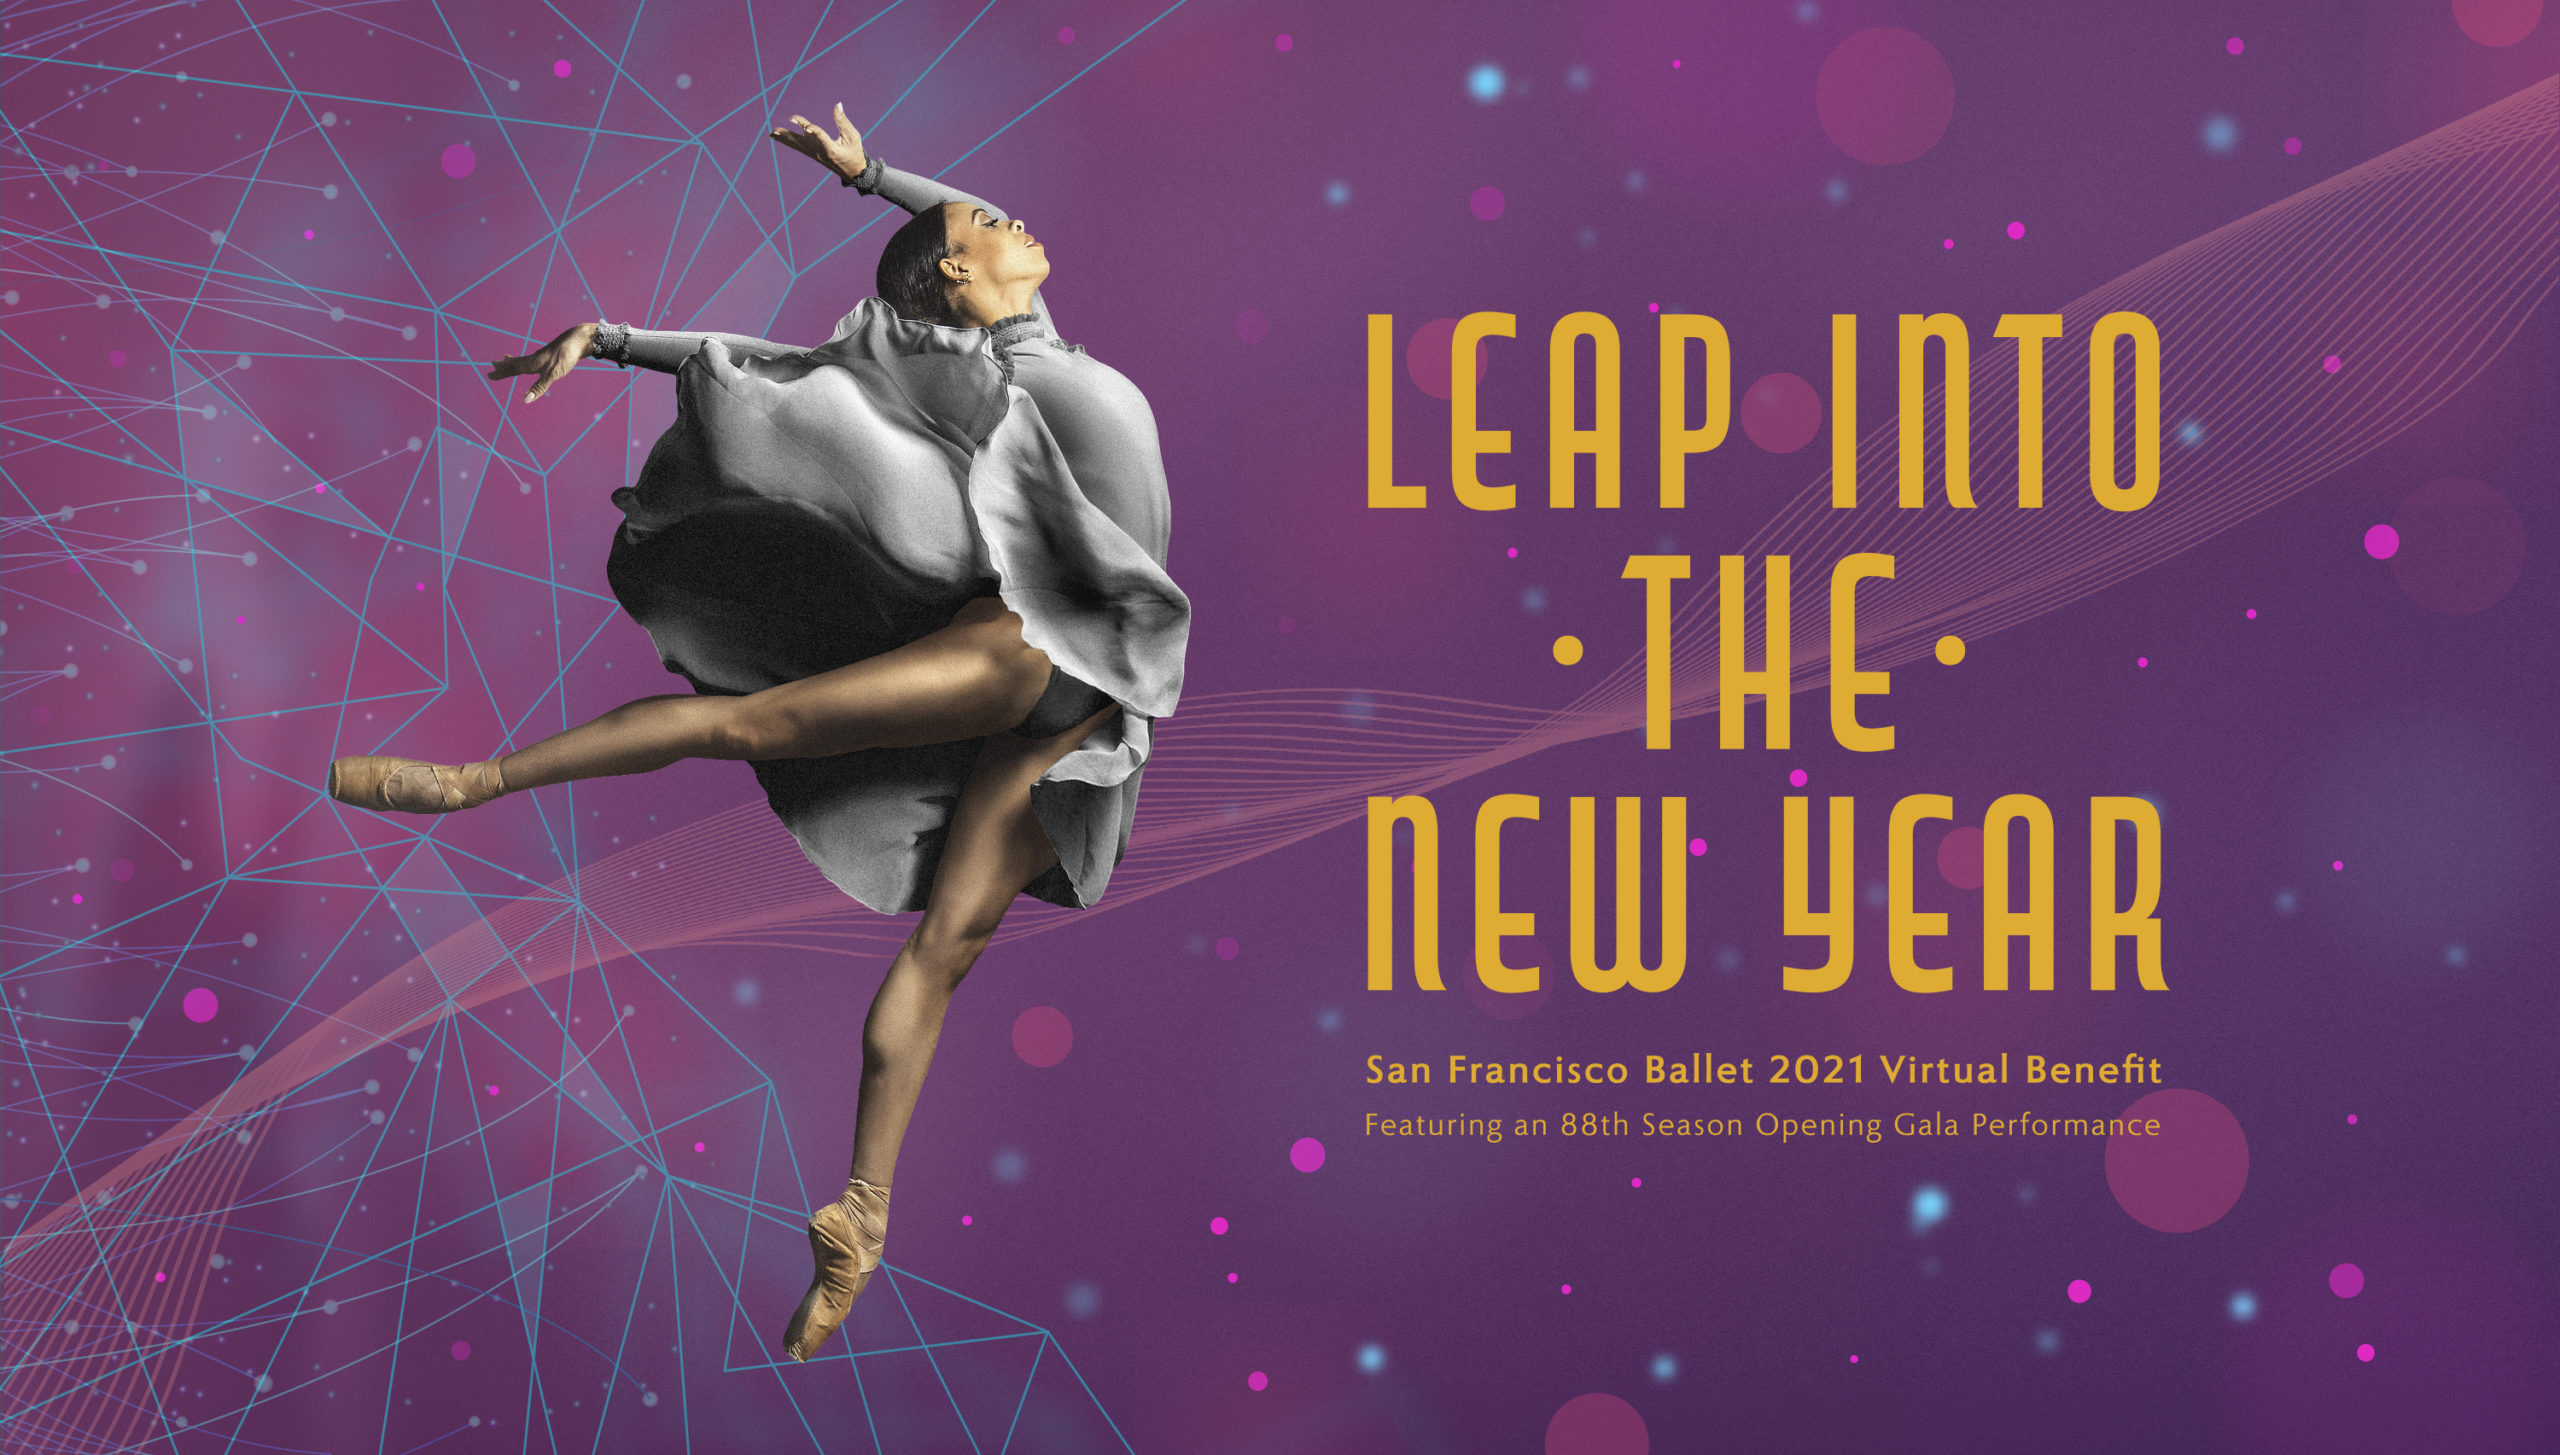 SAN FRANCISCO BALLET ANNOUNCES DETAILS FOR LEAP INTO THE NEW YEAR, A VIRTUAL BENEFIT AND GALA PERFORMANCE, JANUARY 14, 2021